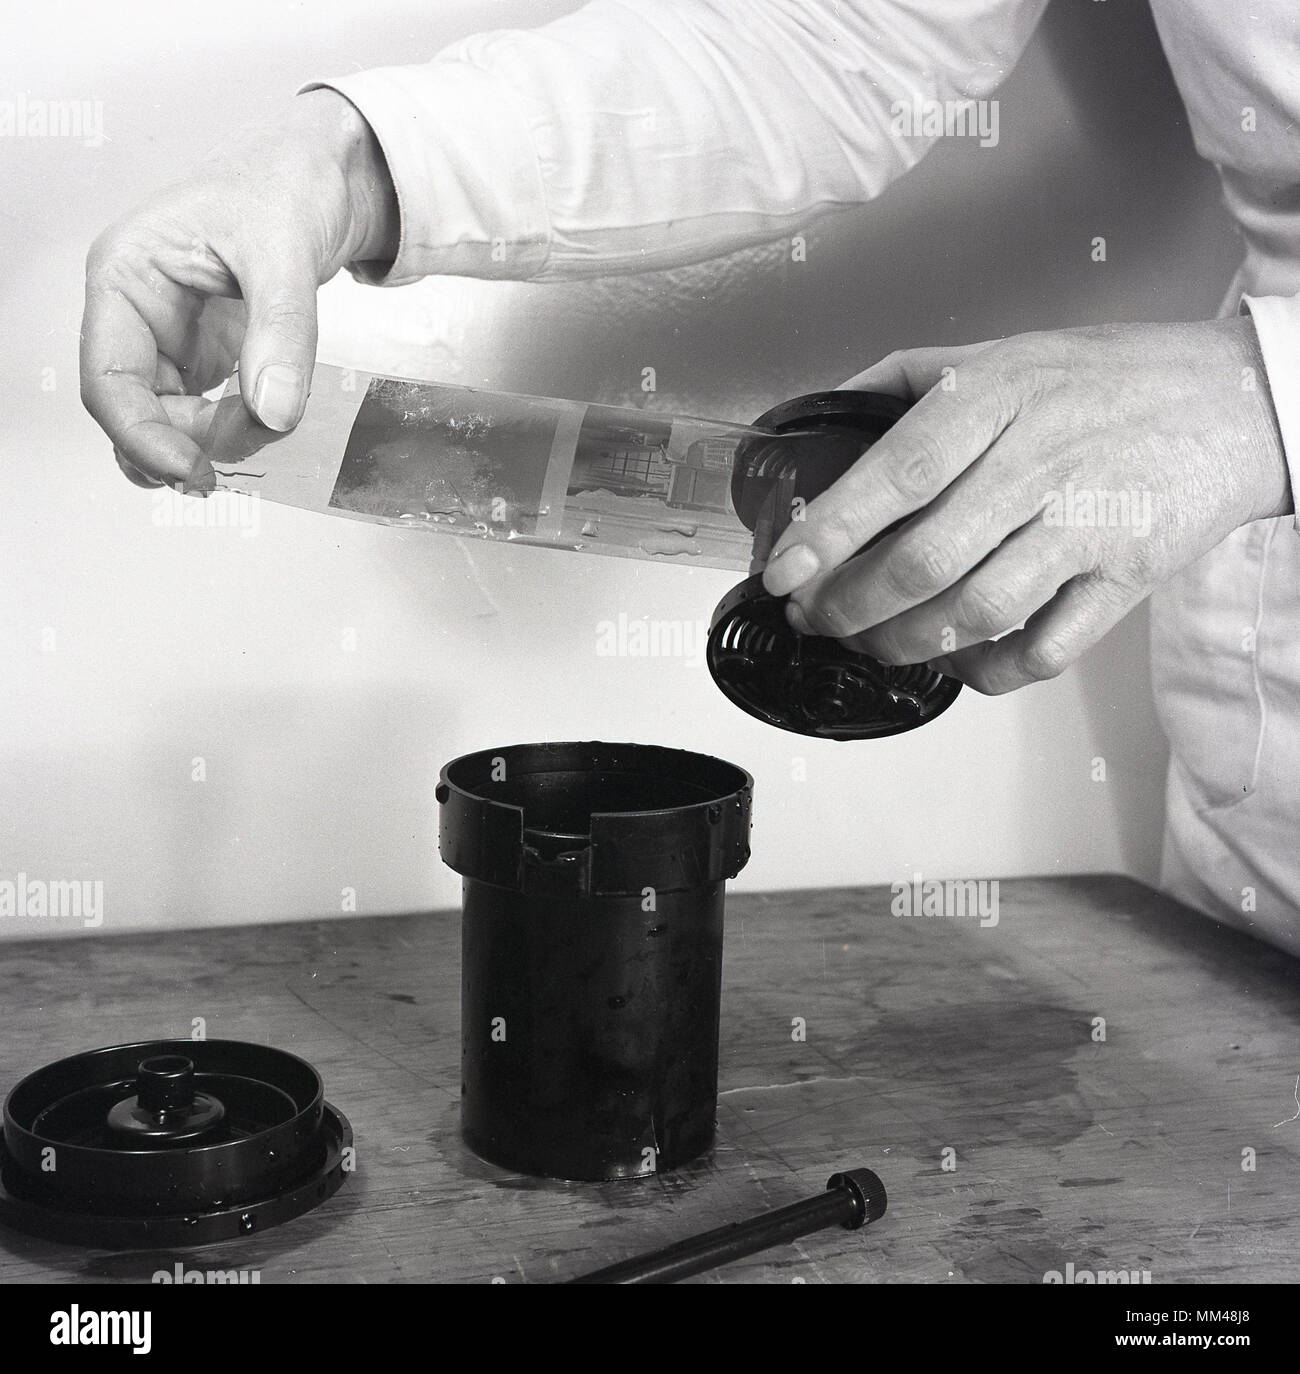 1950s, historical picture showing a strip of film negatives after being taken out of the chemical solution used to develop the black and white photographic film. - Stock Image